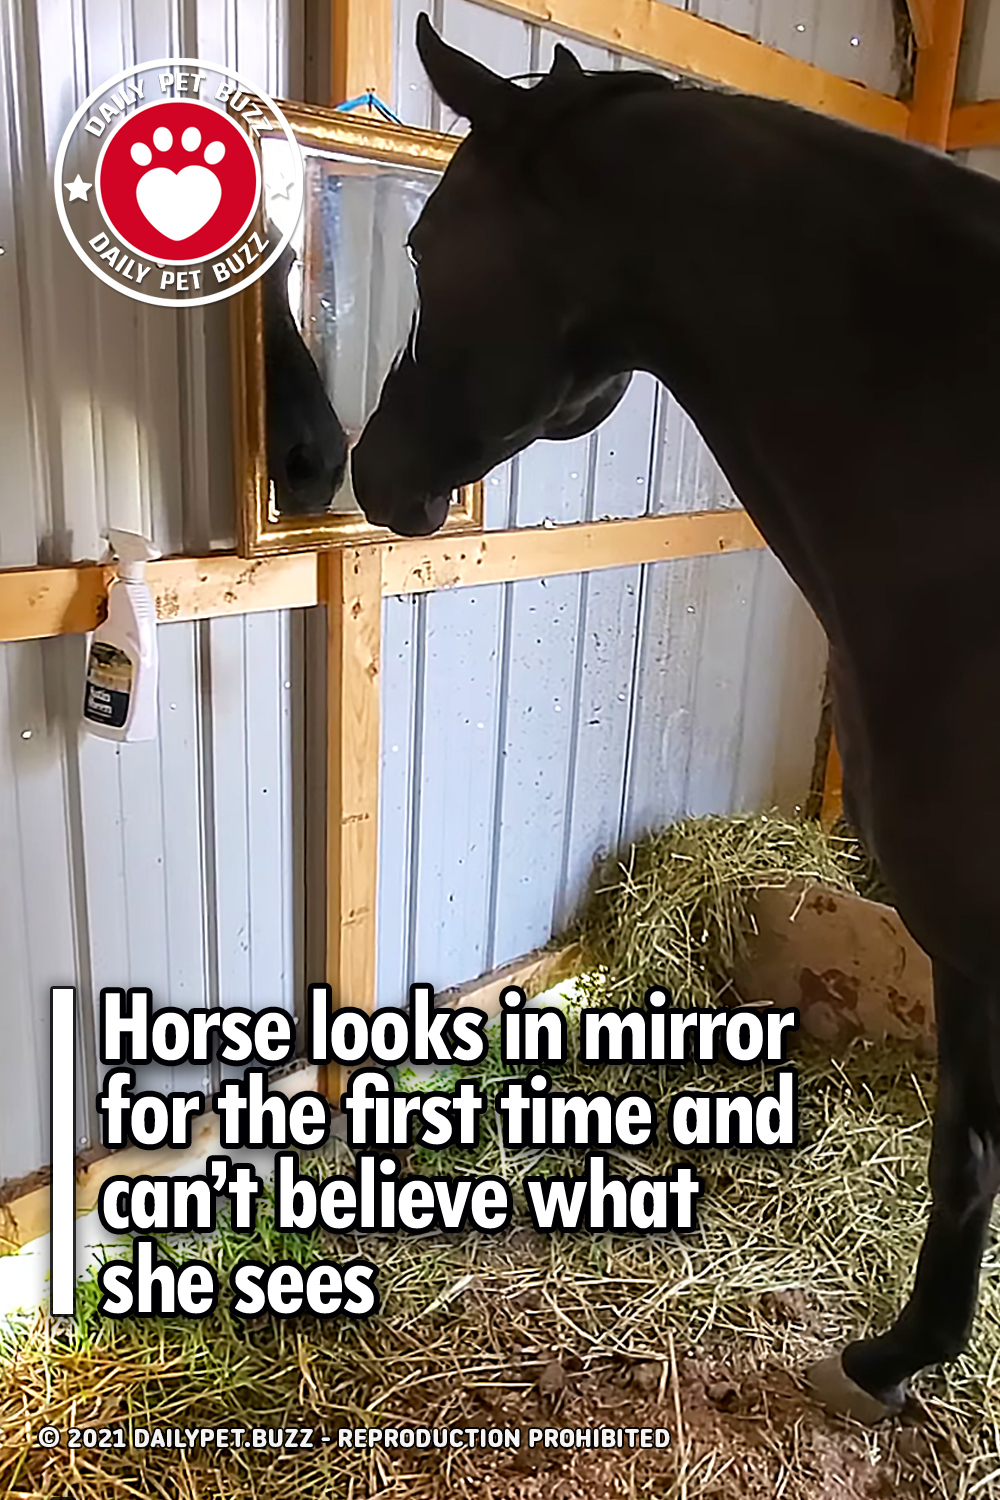 Horse looks in mirror for the first time and can't believe what she sees